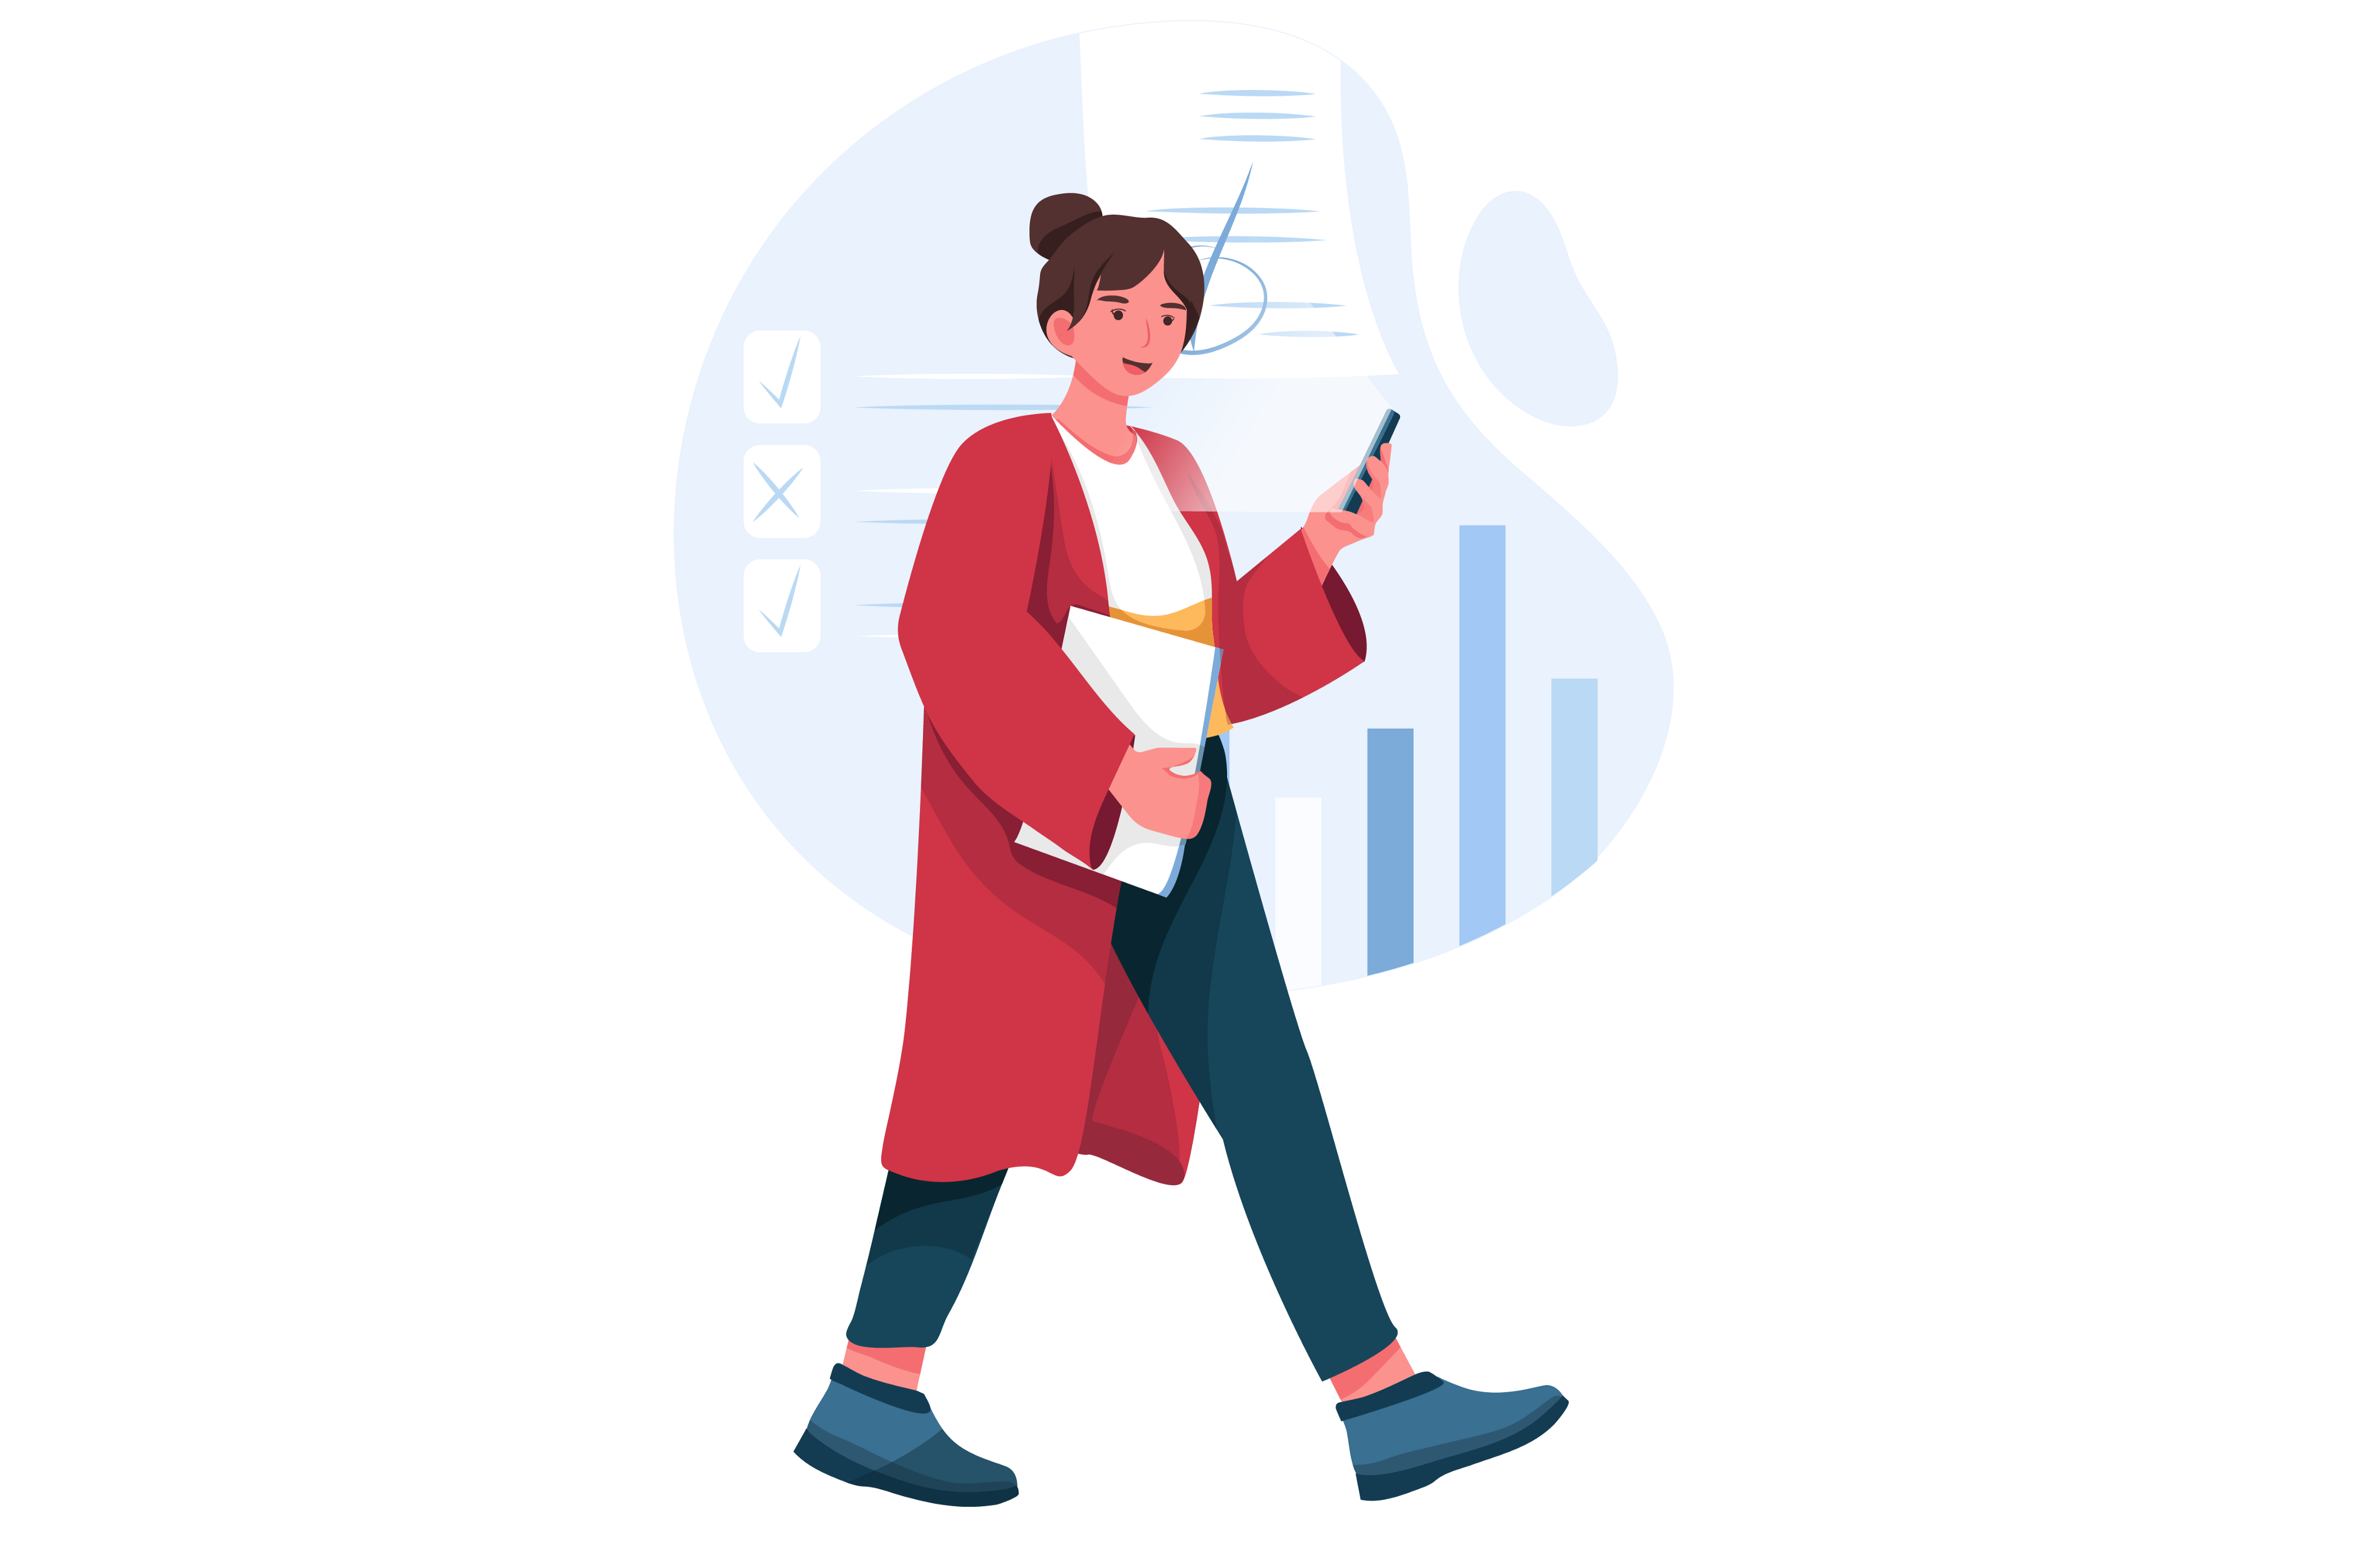 Illustration of a person walking with a phone in hand and paper in another